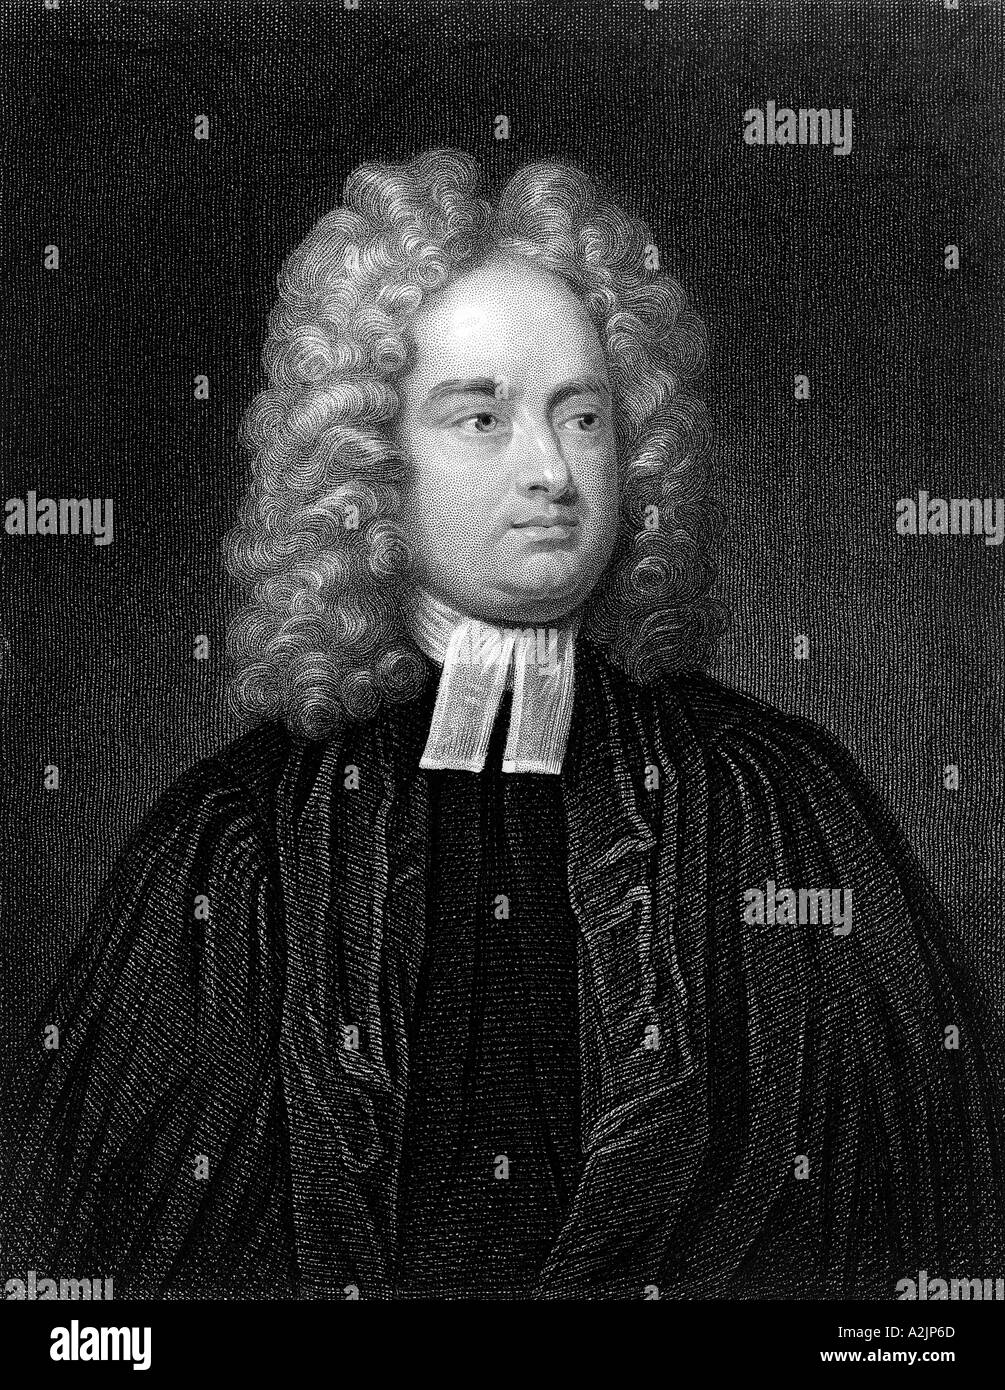 JONATHAN SWIFT Anglo Irish satirist and churchman 1667 1745 who wrote Gulliver s Travels 1726 - Stock Image